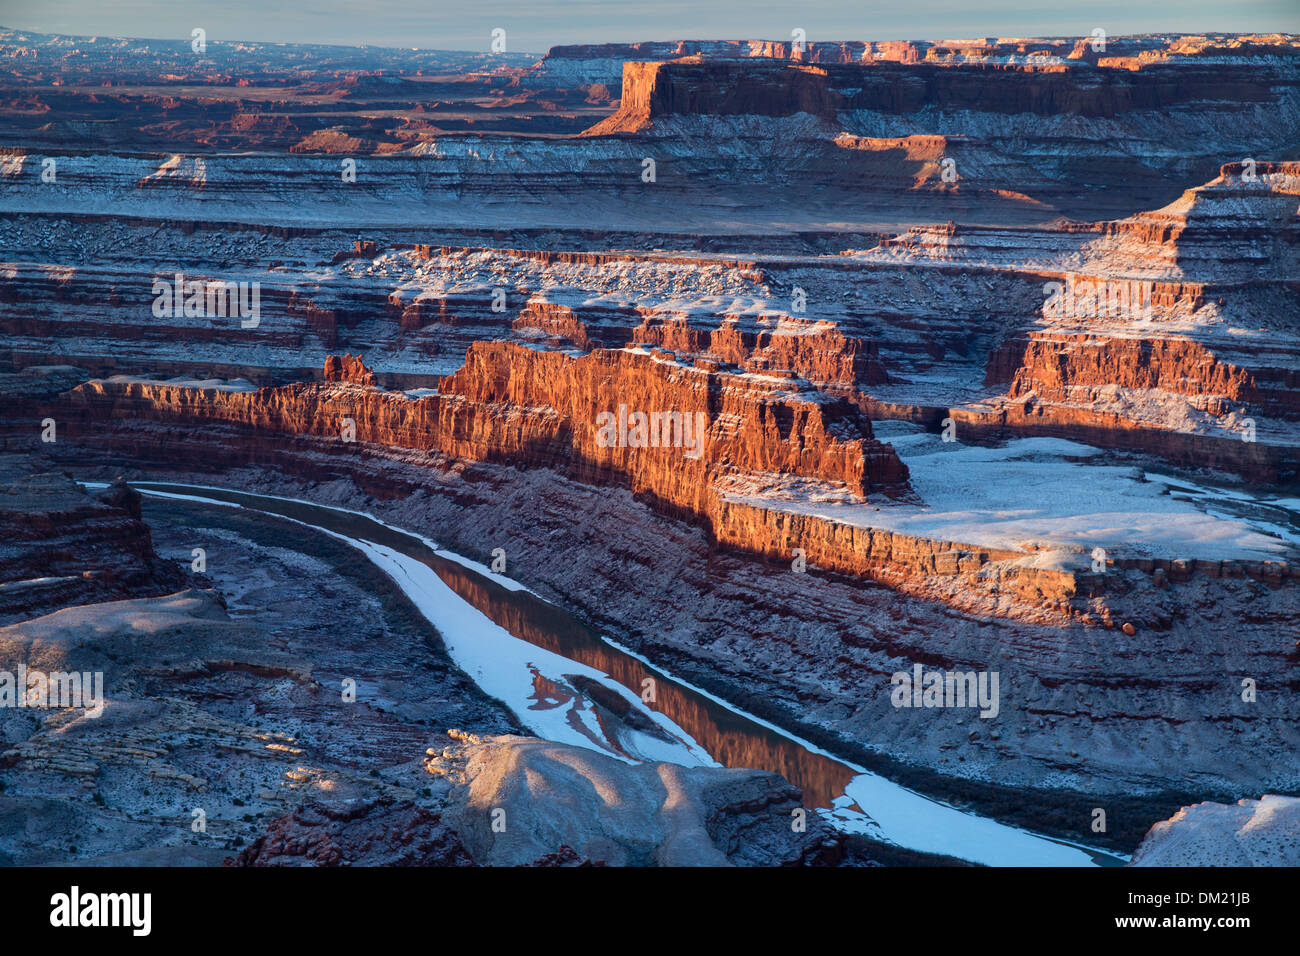 the Colorado Valley from Dead Horse Point at dawn, Utah, USA Stock Photo